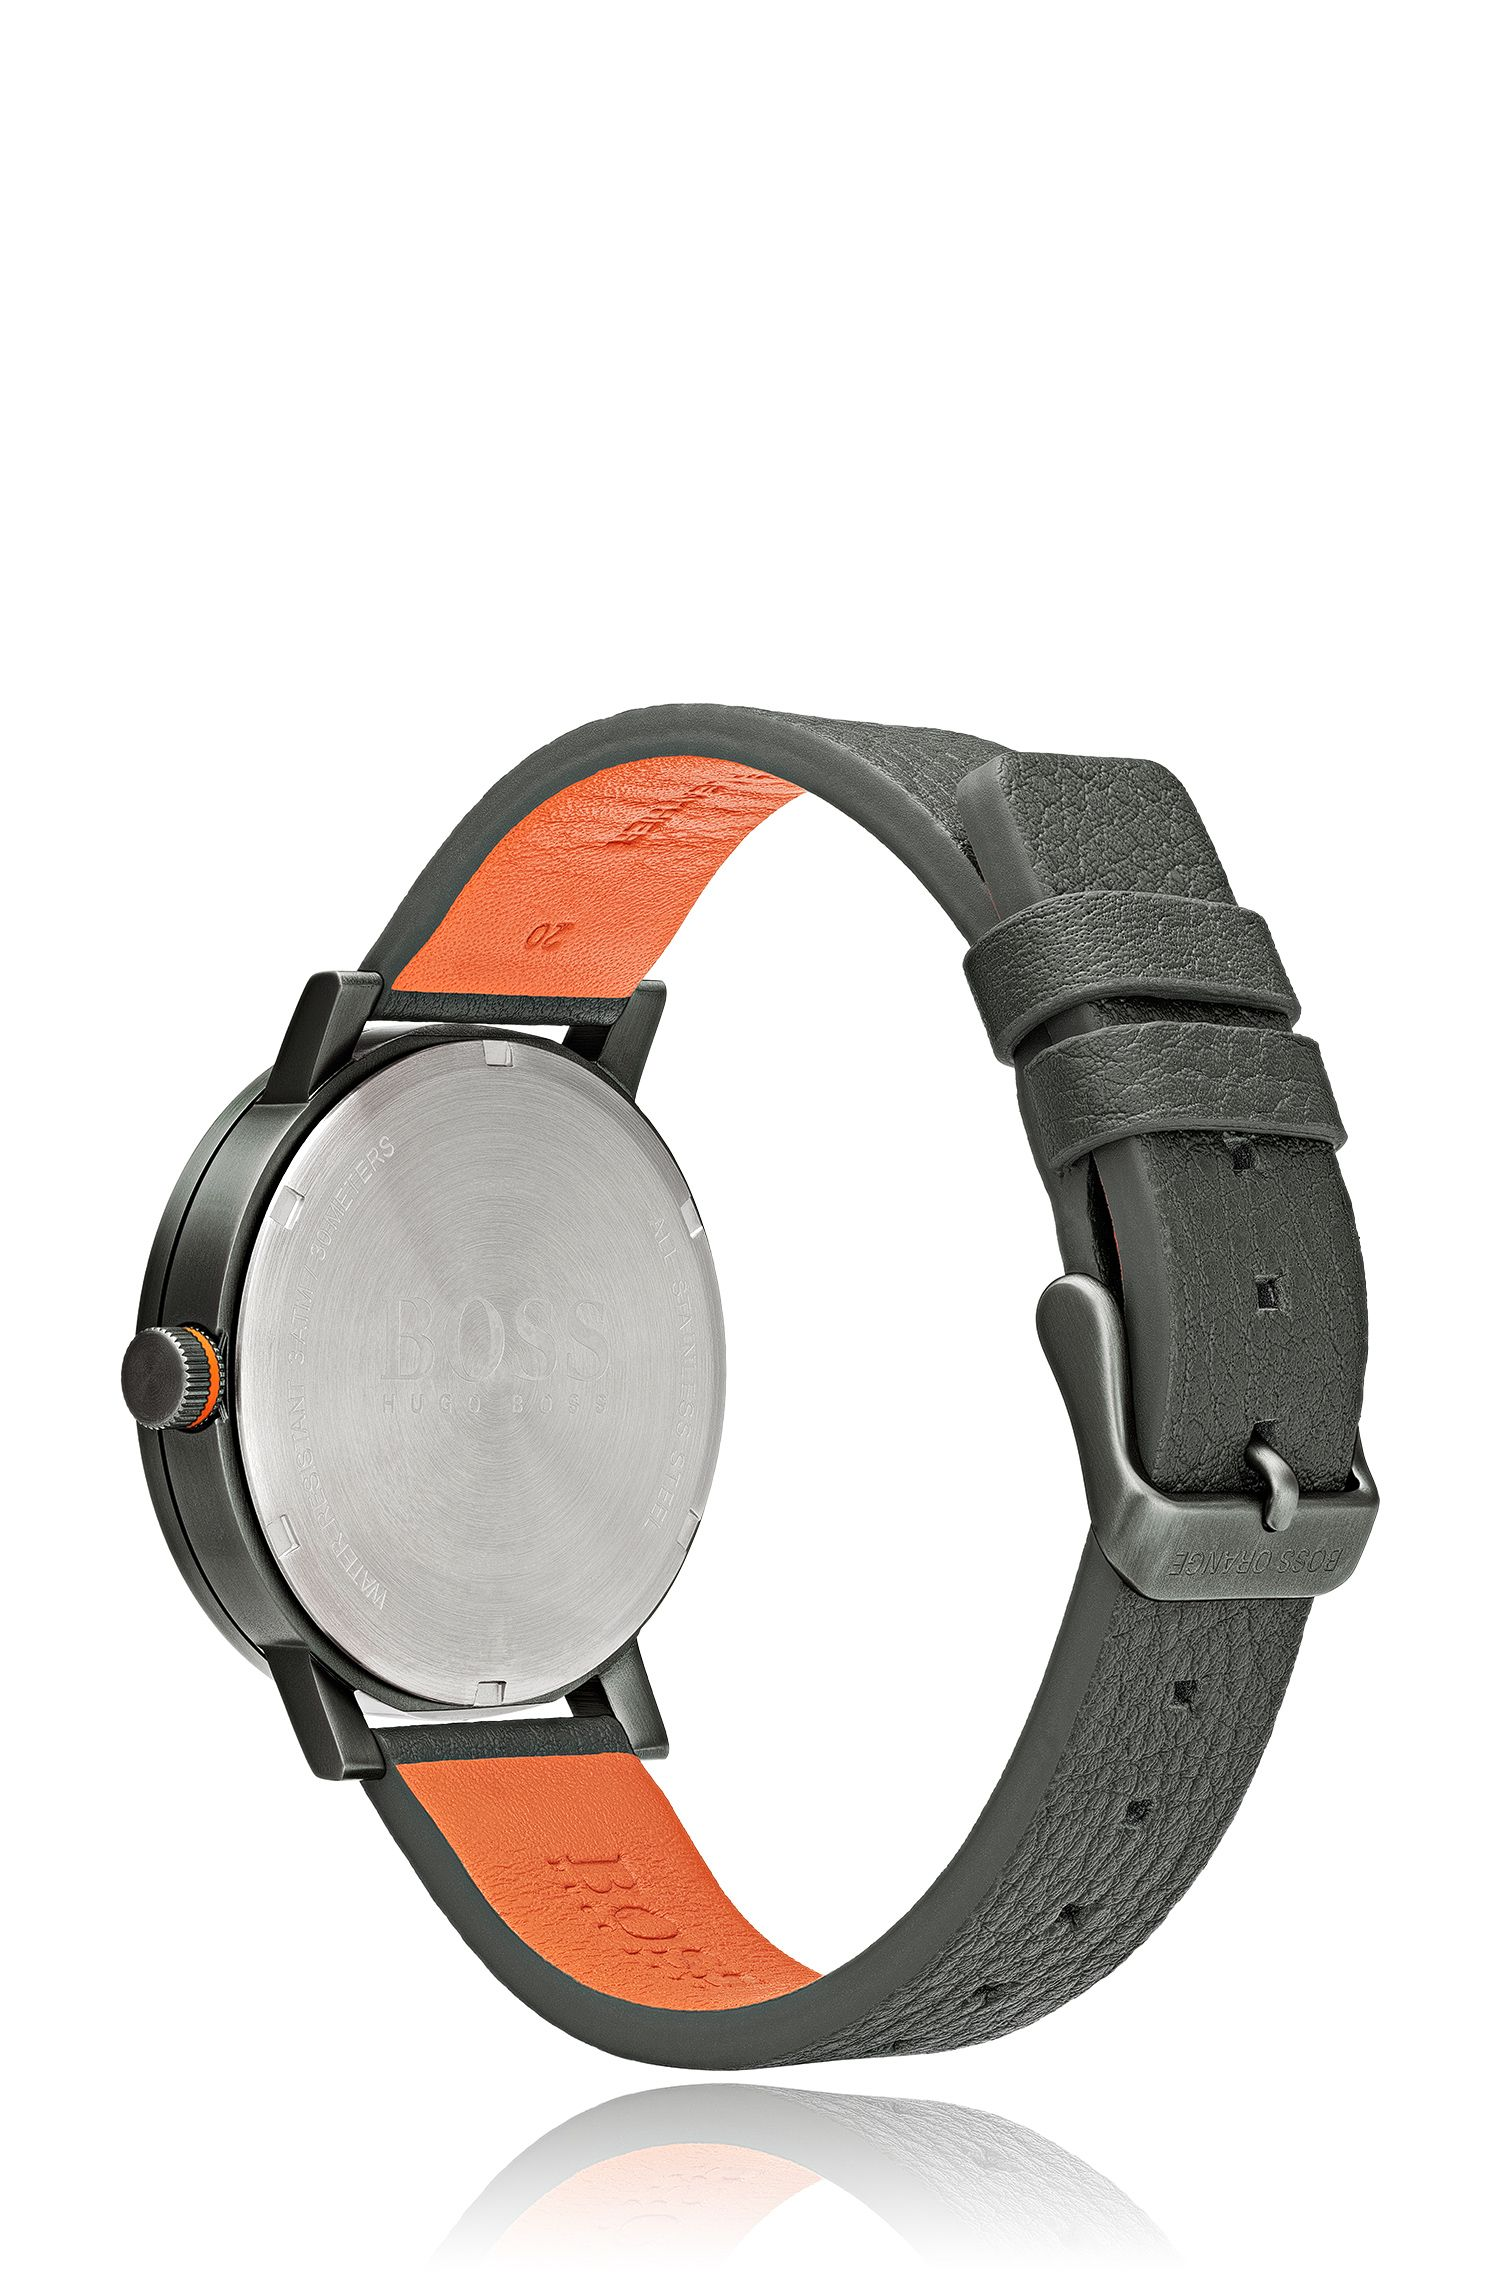 Grey-dial watch with textured-leather strap